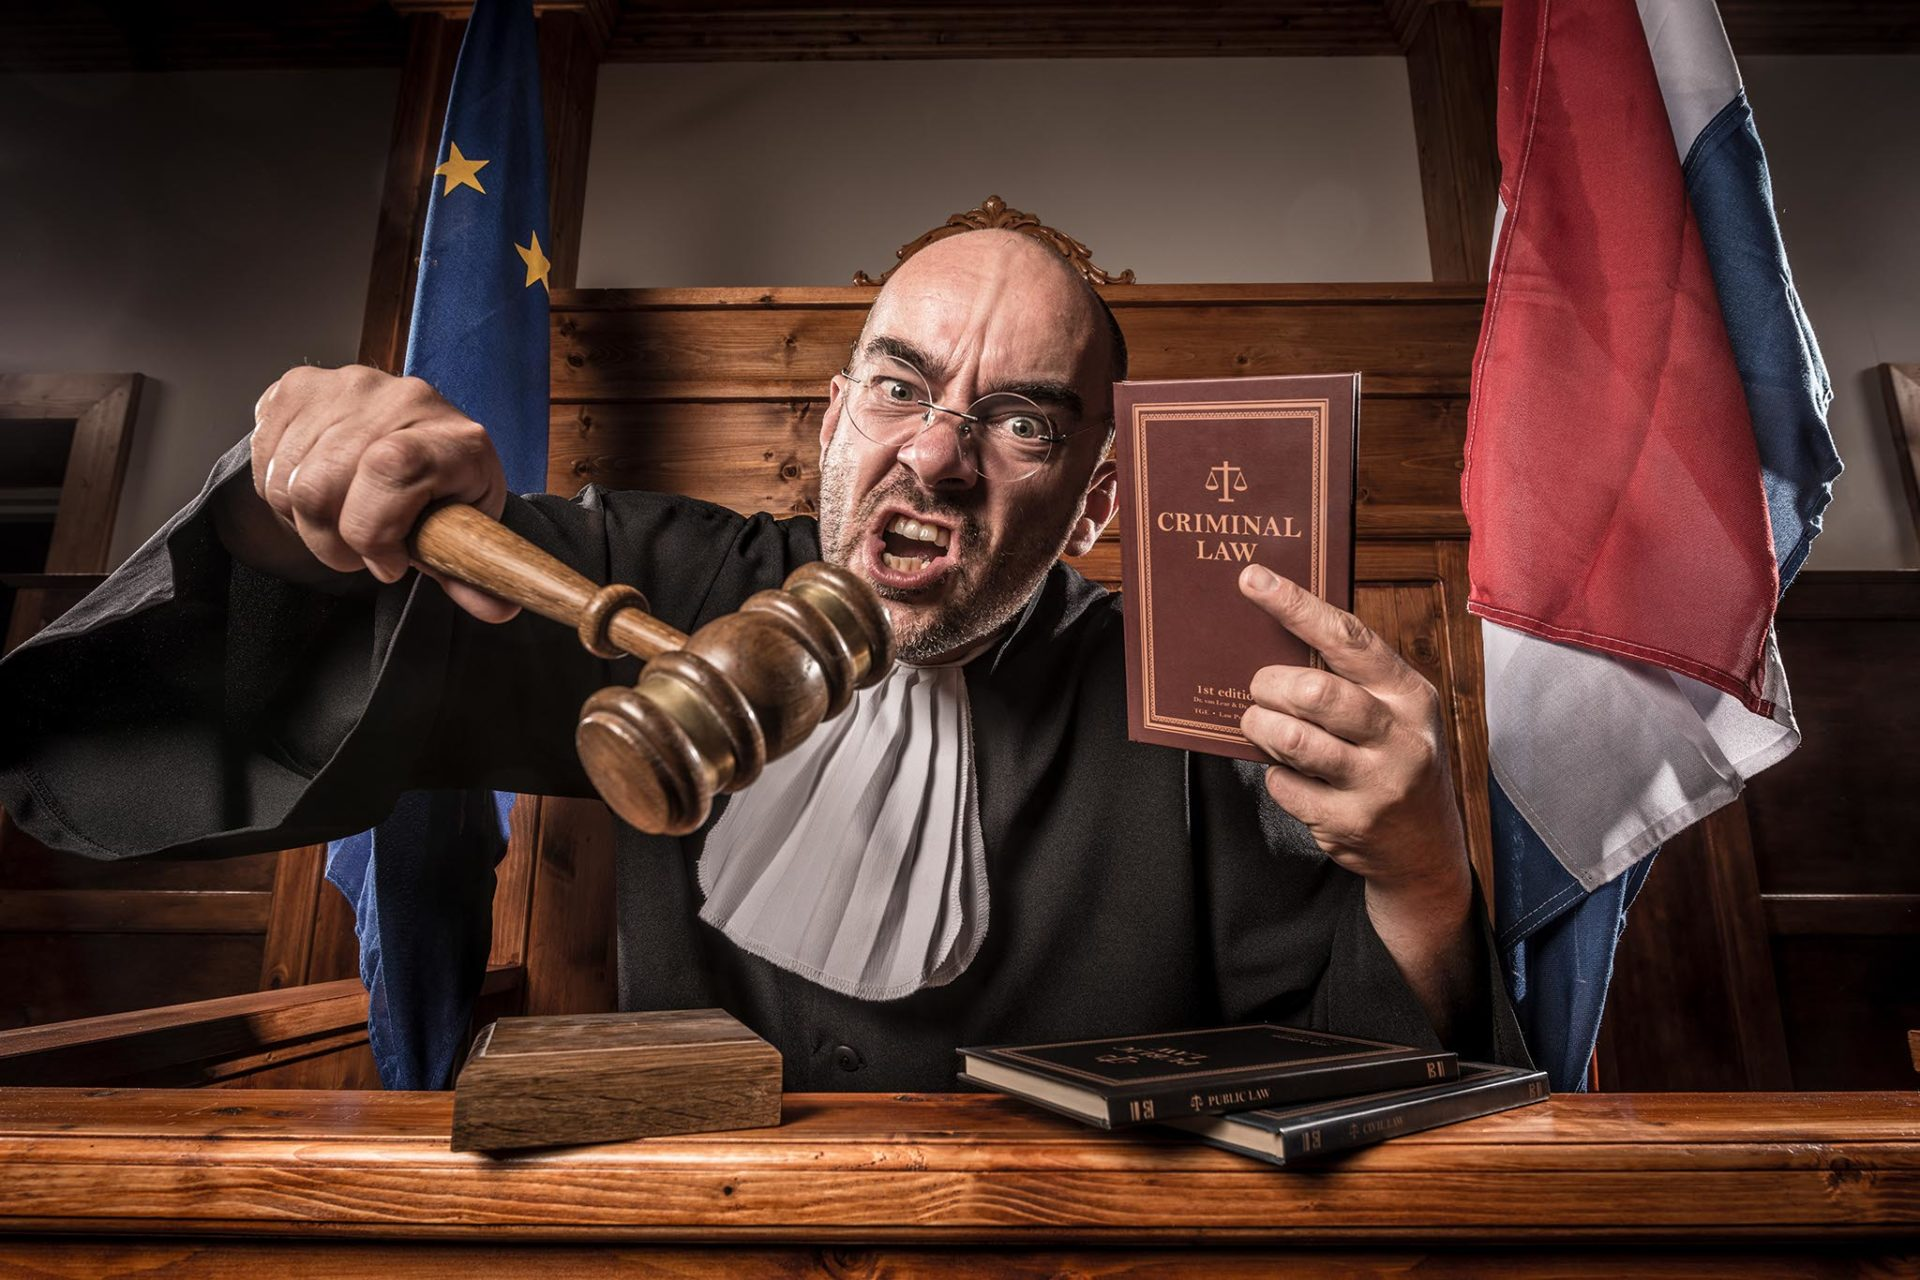 The_Great_Escape-The Courtroom-Rechter4B